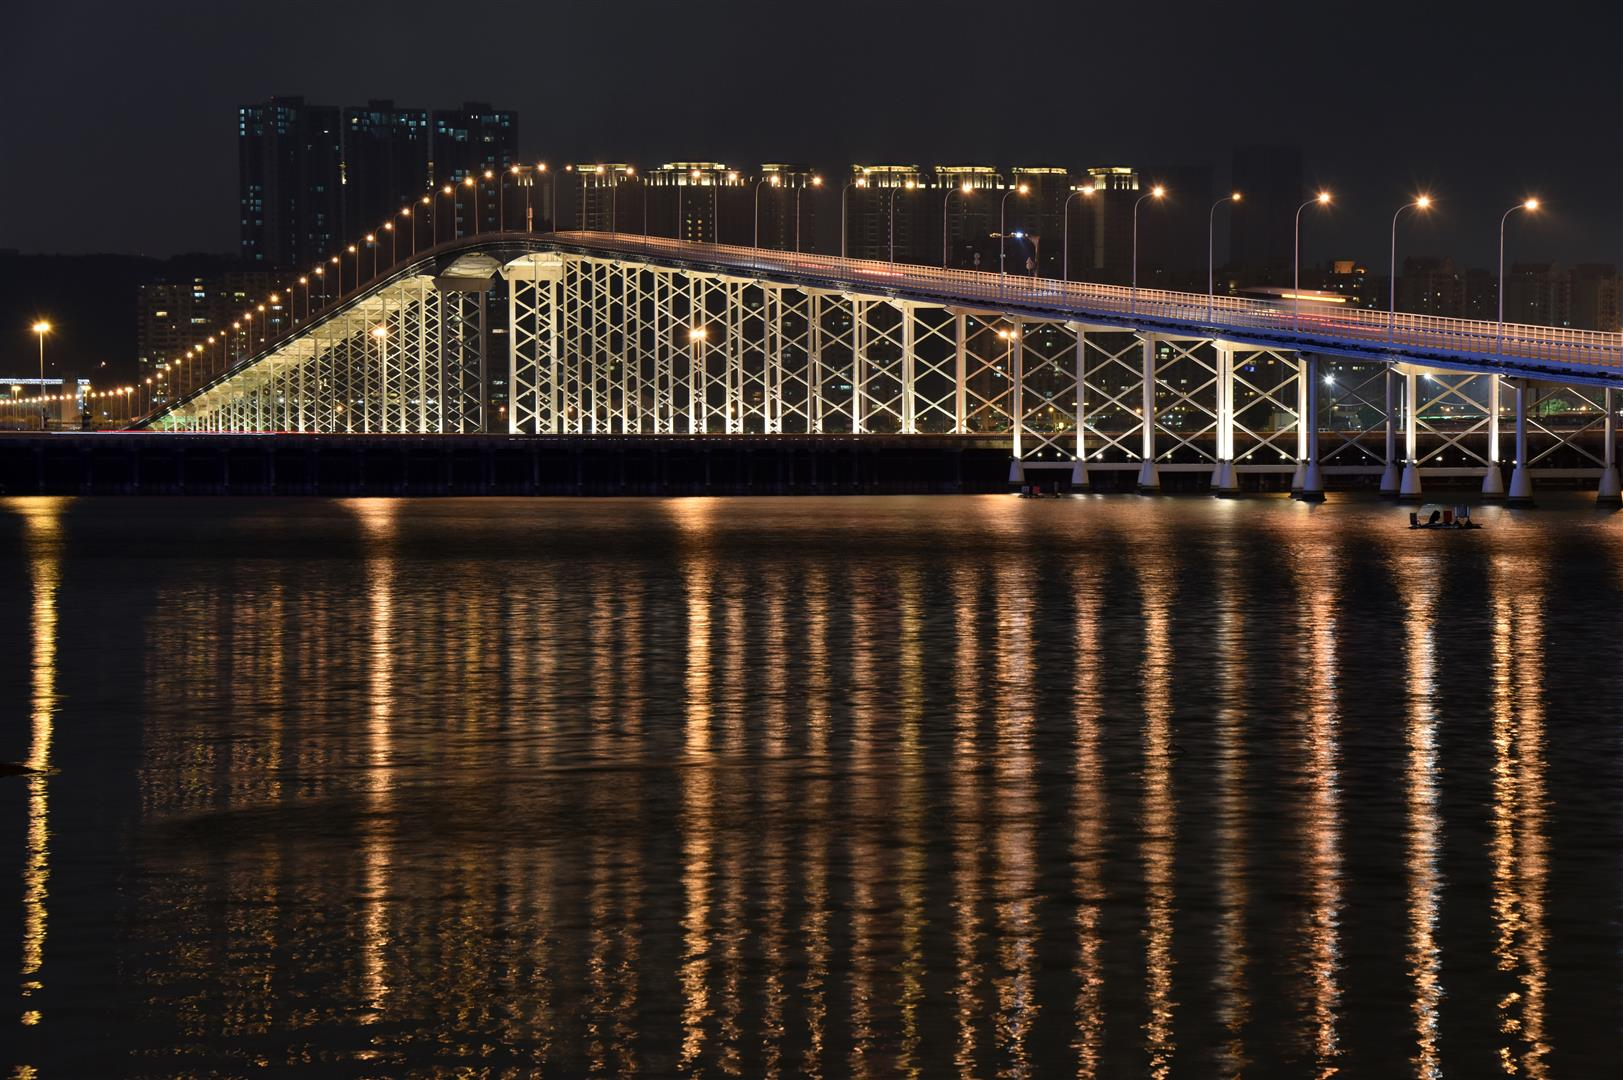 Macau - Governor Nobre de Carvalho Bridge - Macau to Taipa Bridge (Large)